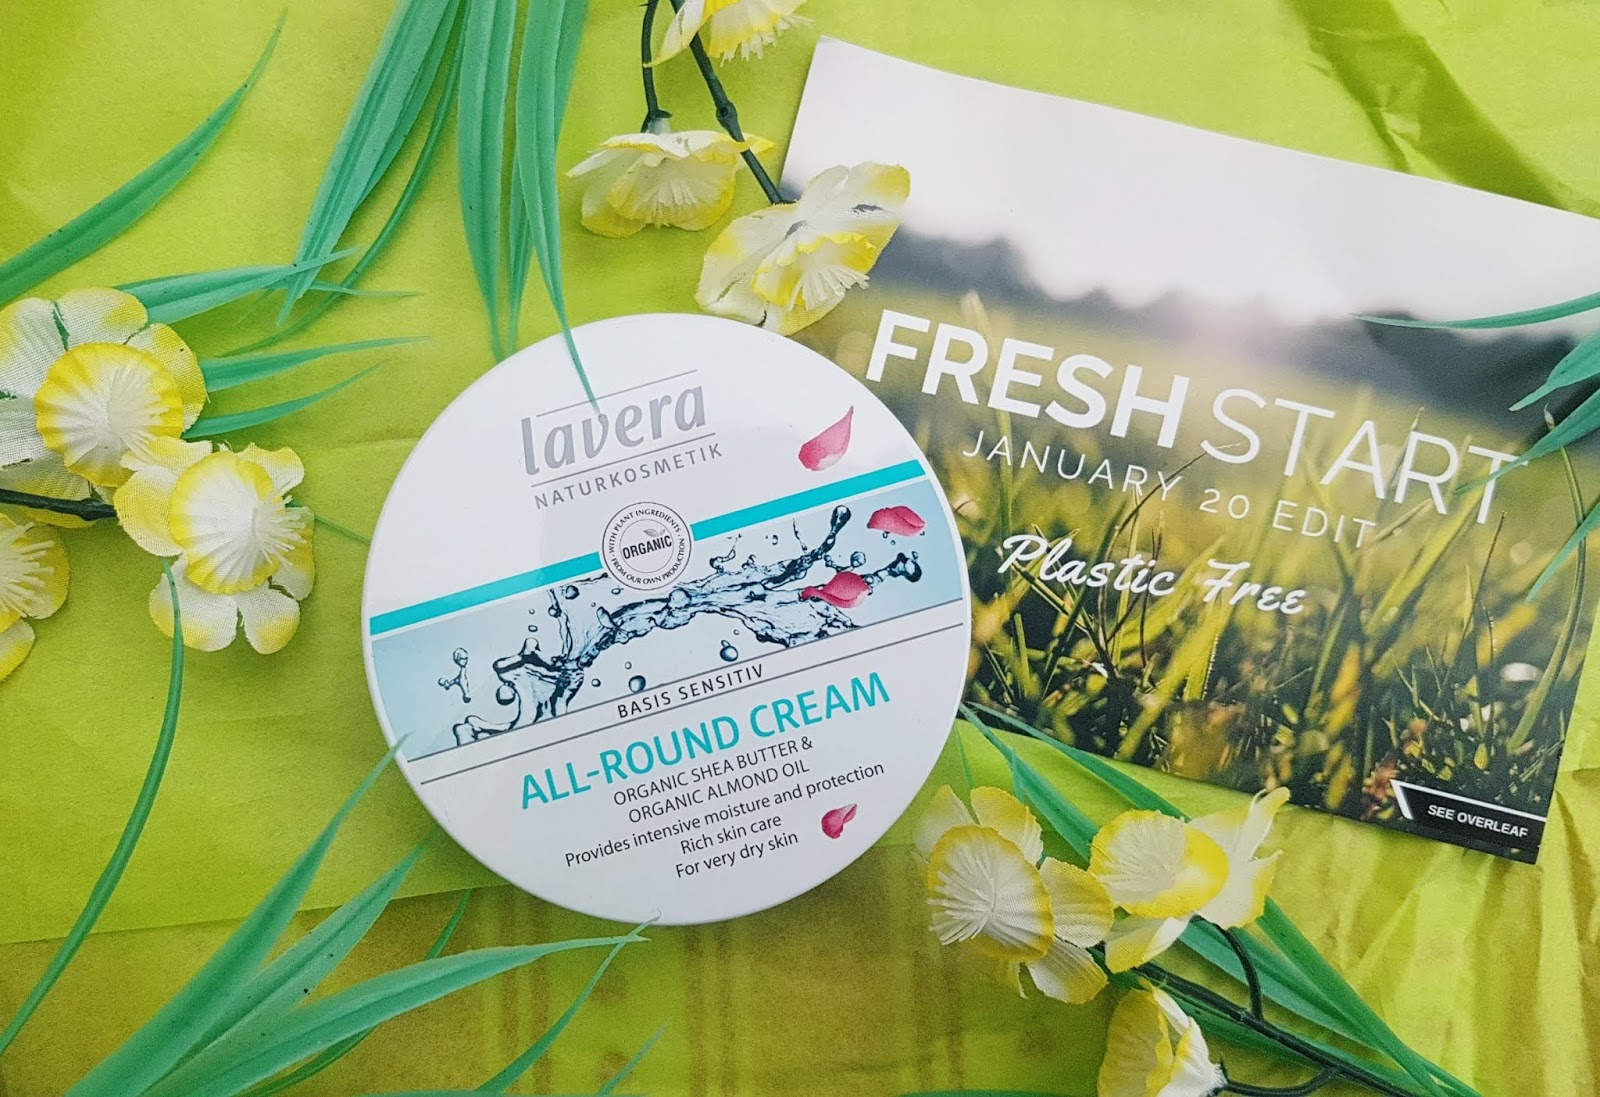 The Natural Beauty Box - Lavera All Round Cream Review